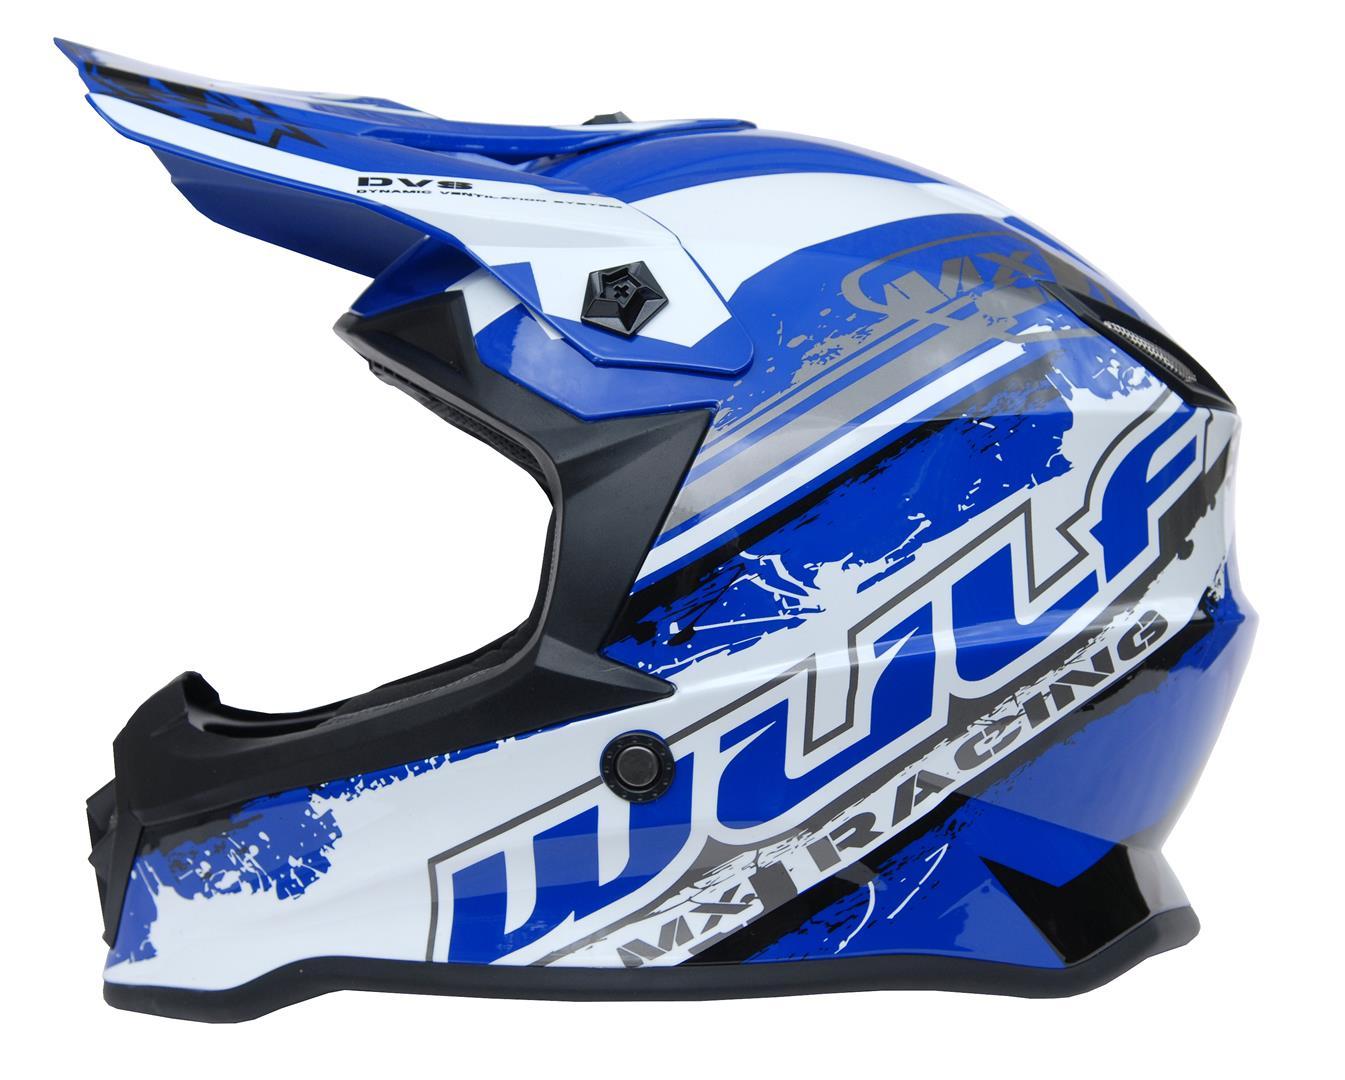 New 2020 Wulfsport Kids Off Road Pro Helmet - Blue